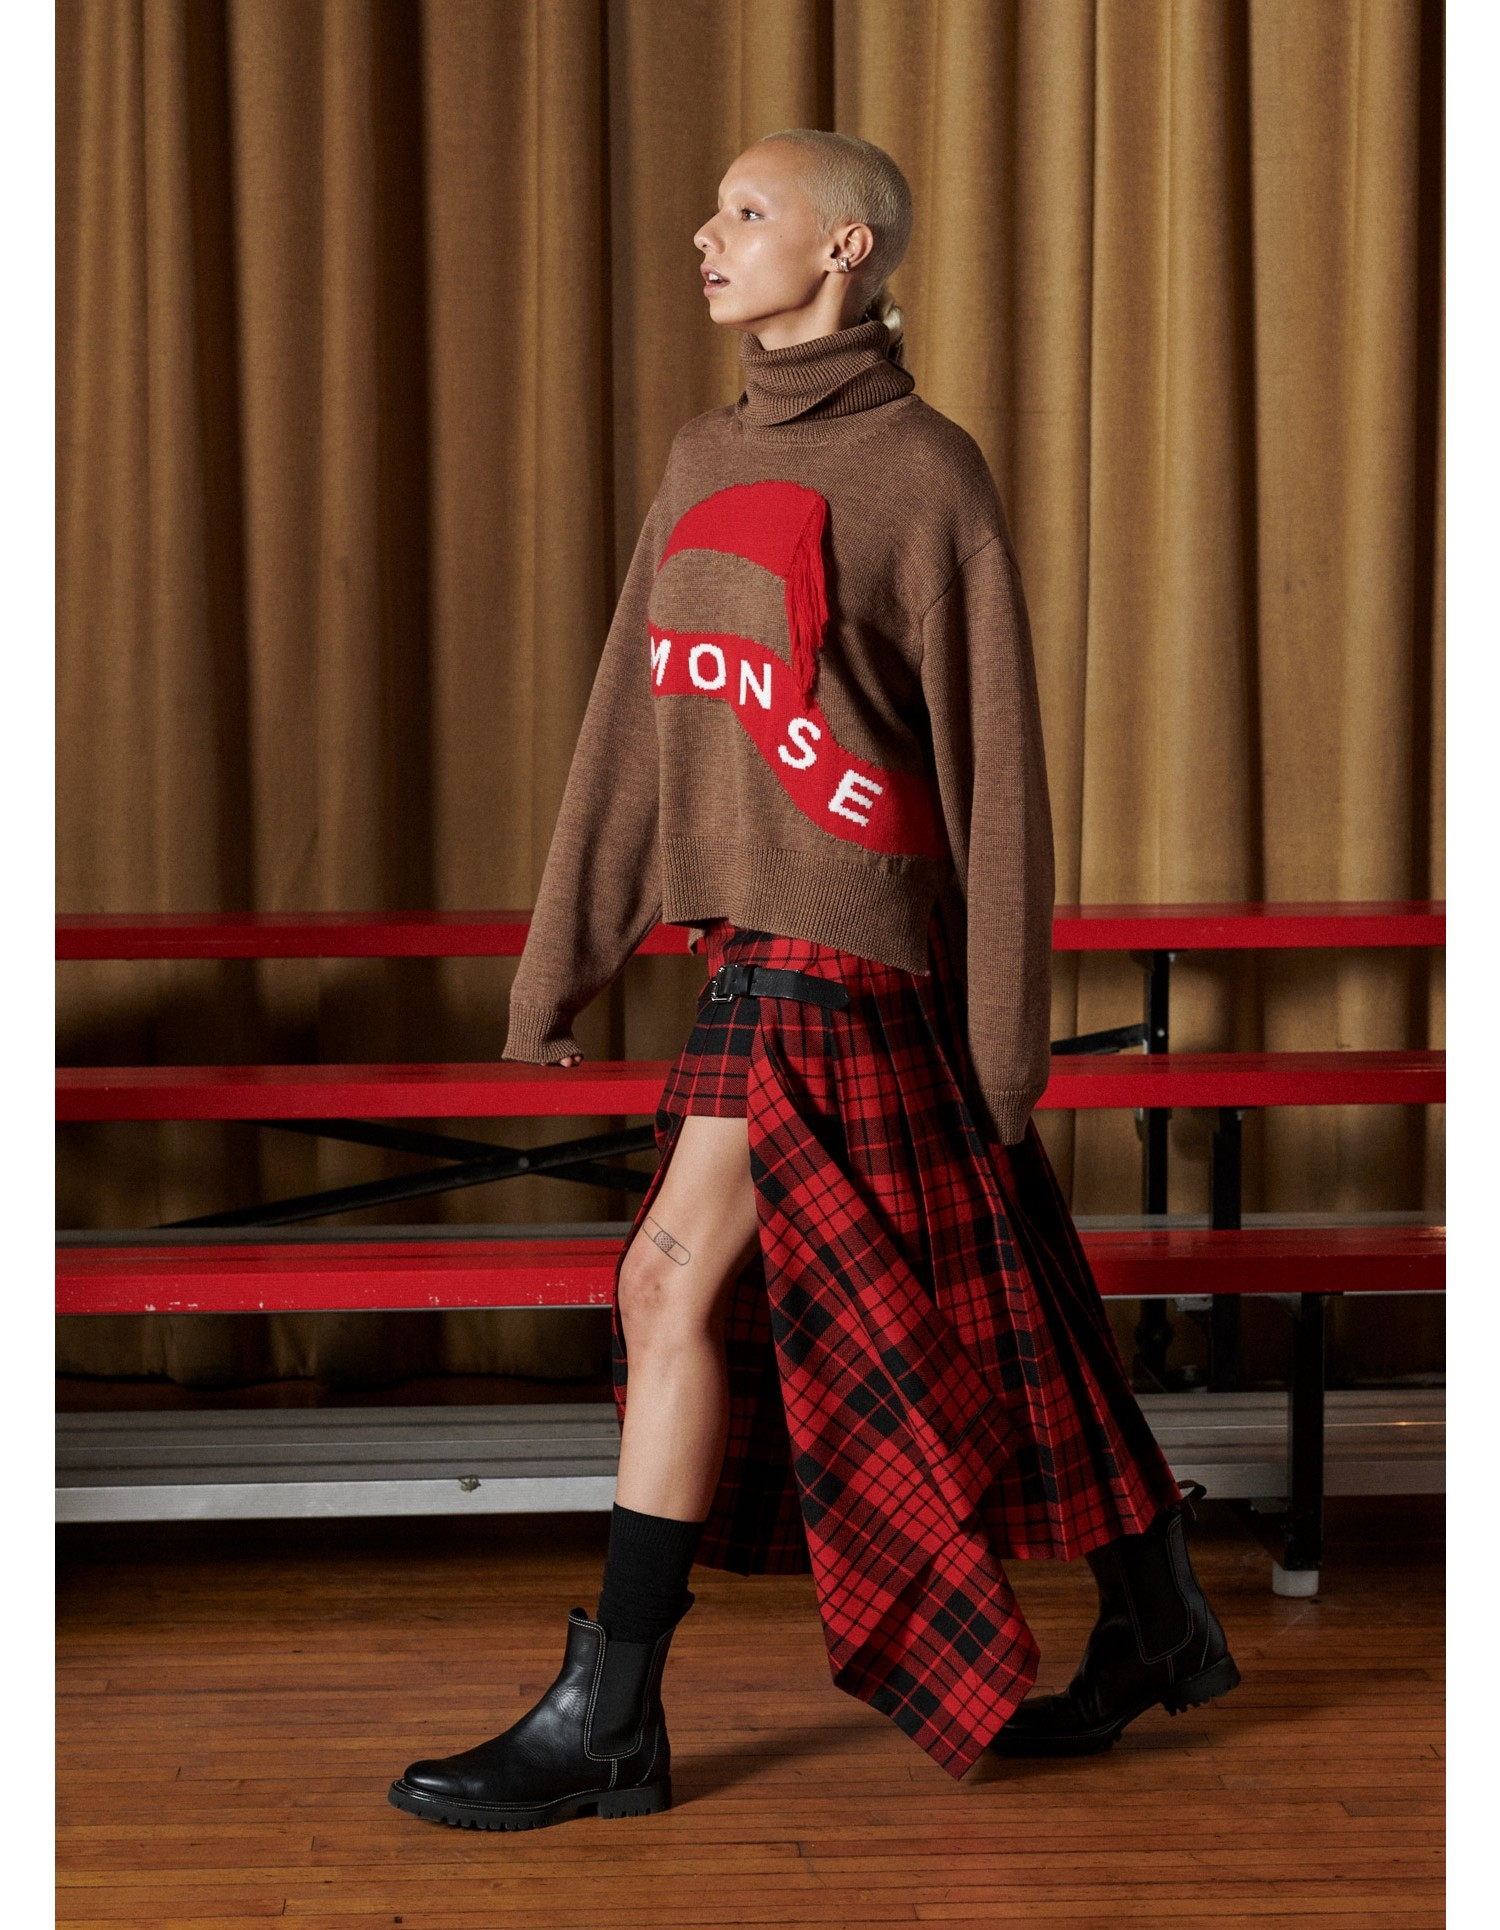 MONSE Tartan Pleated Academy Skirt in Scarlet and Black on Model Side View